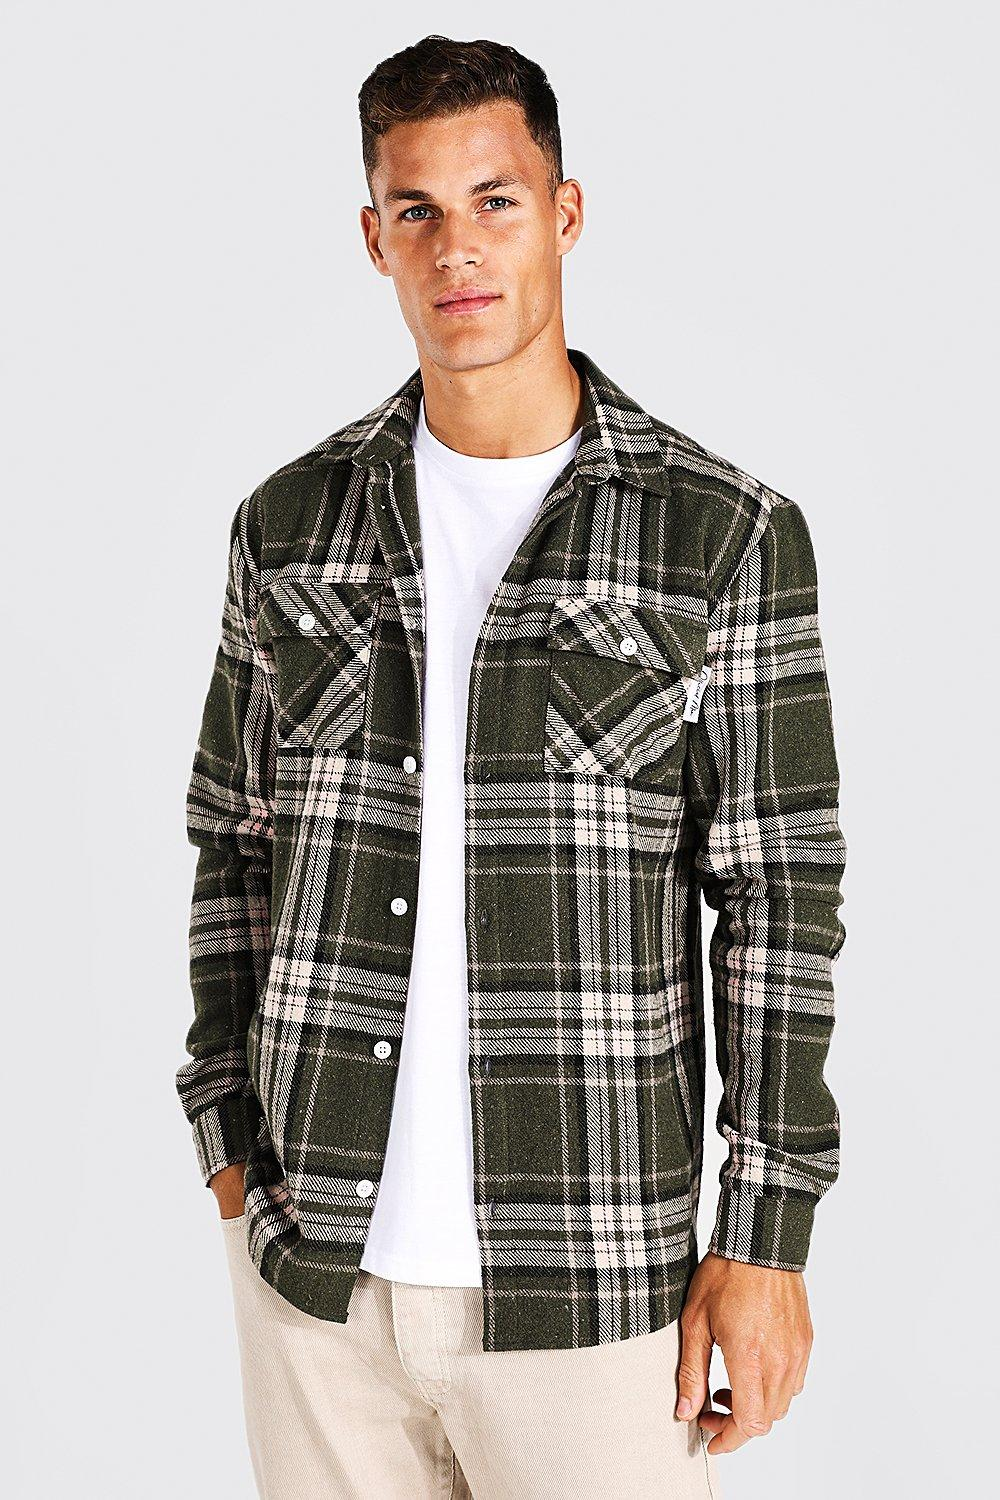 90s Outfits for Guys | Trendy, Party, Cool, Casaul Mens Tall Long Sleeve Heavyweight Flannel Overshirt - Green $21.00 AT vintagedancer.com